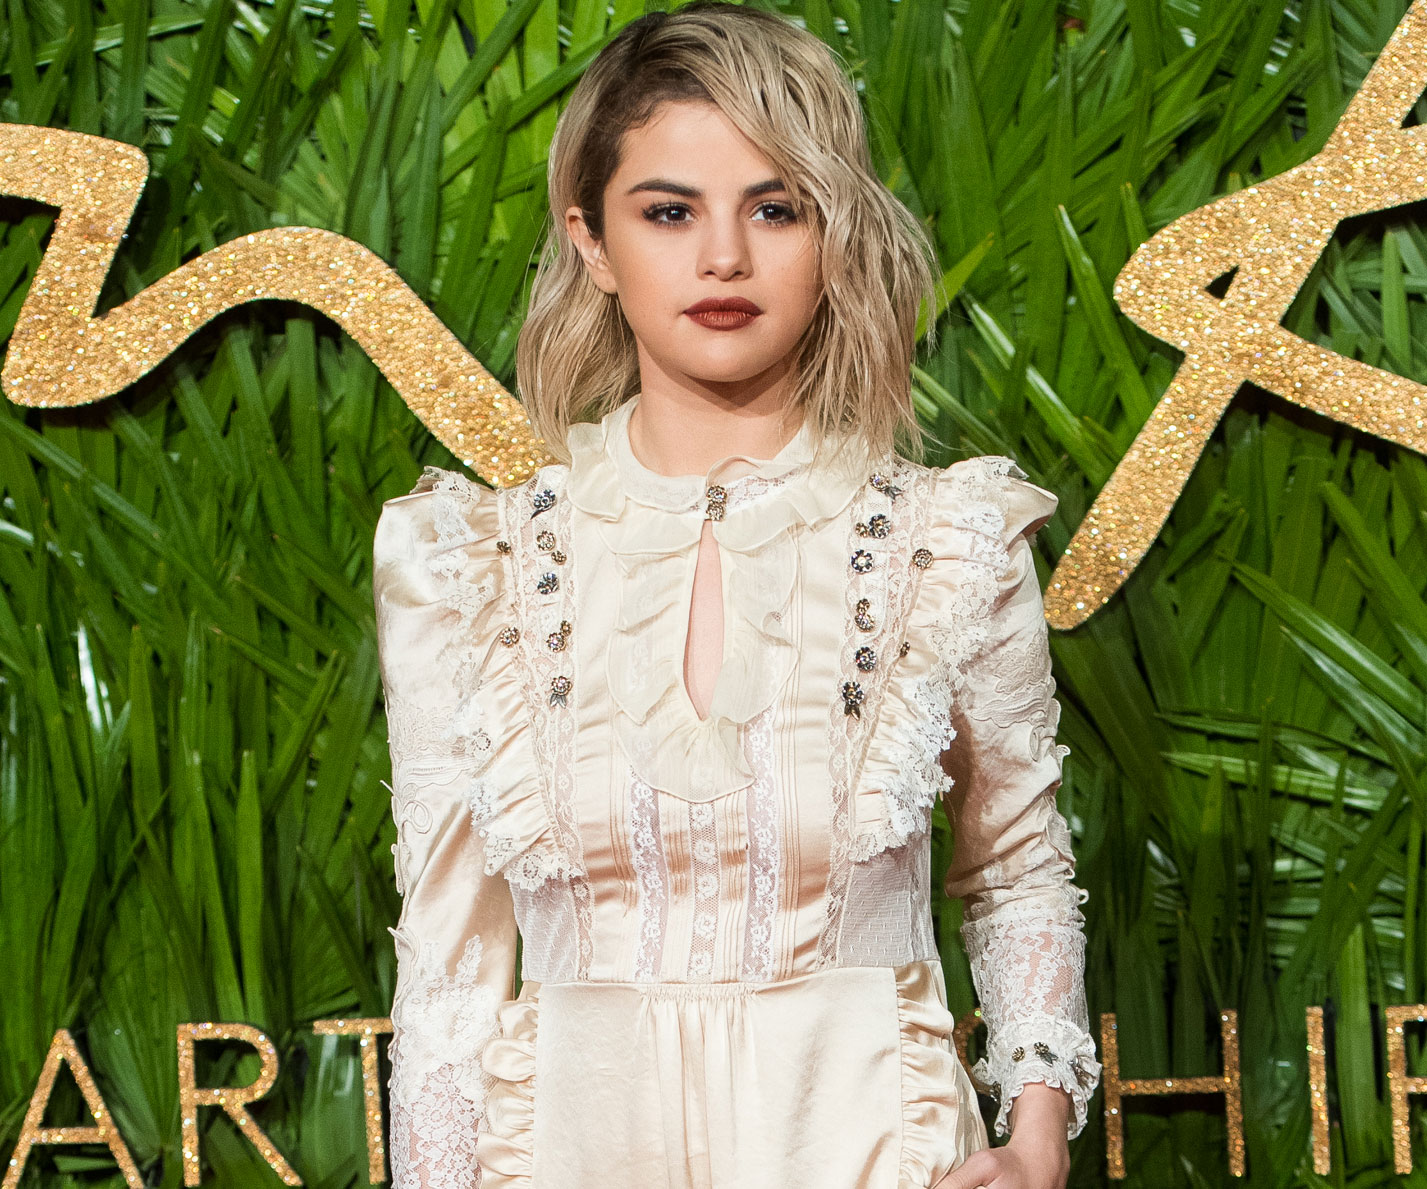 Selena Gomez completes treatment for anxiety and depression